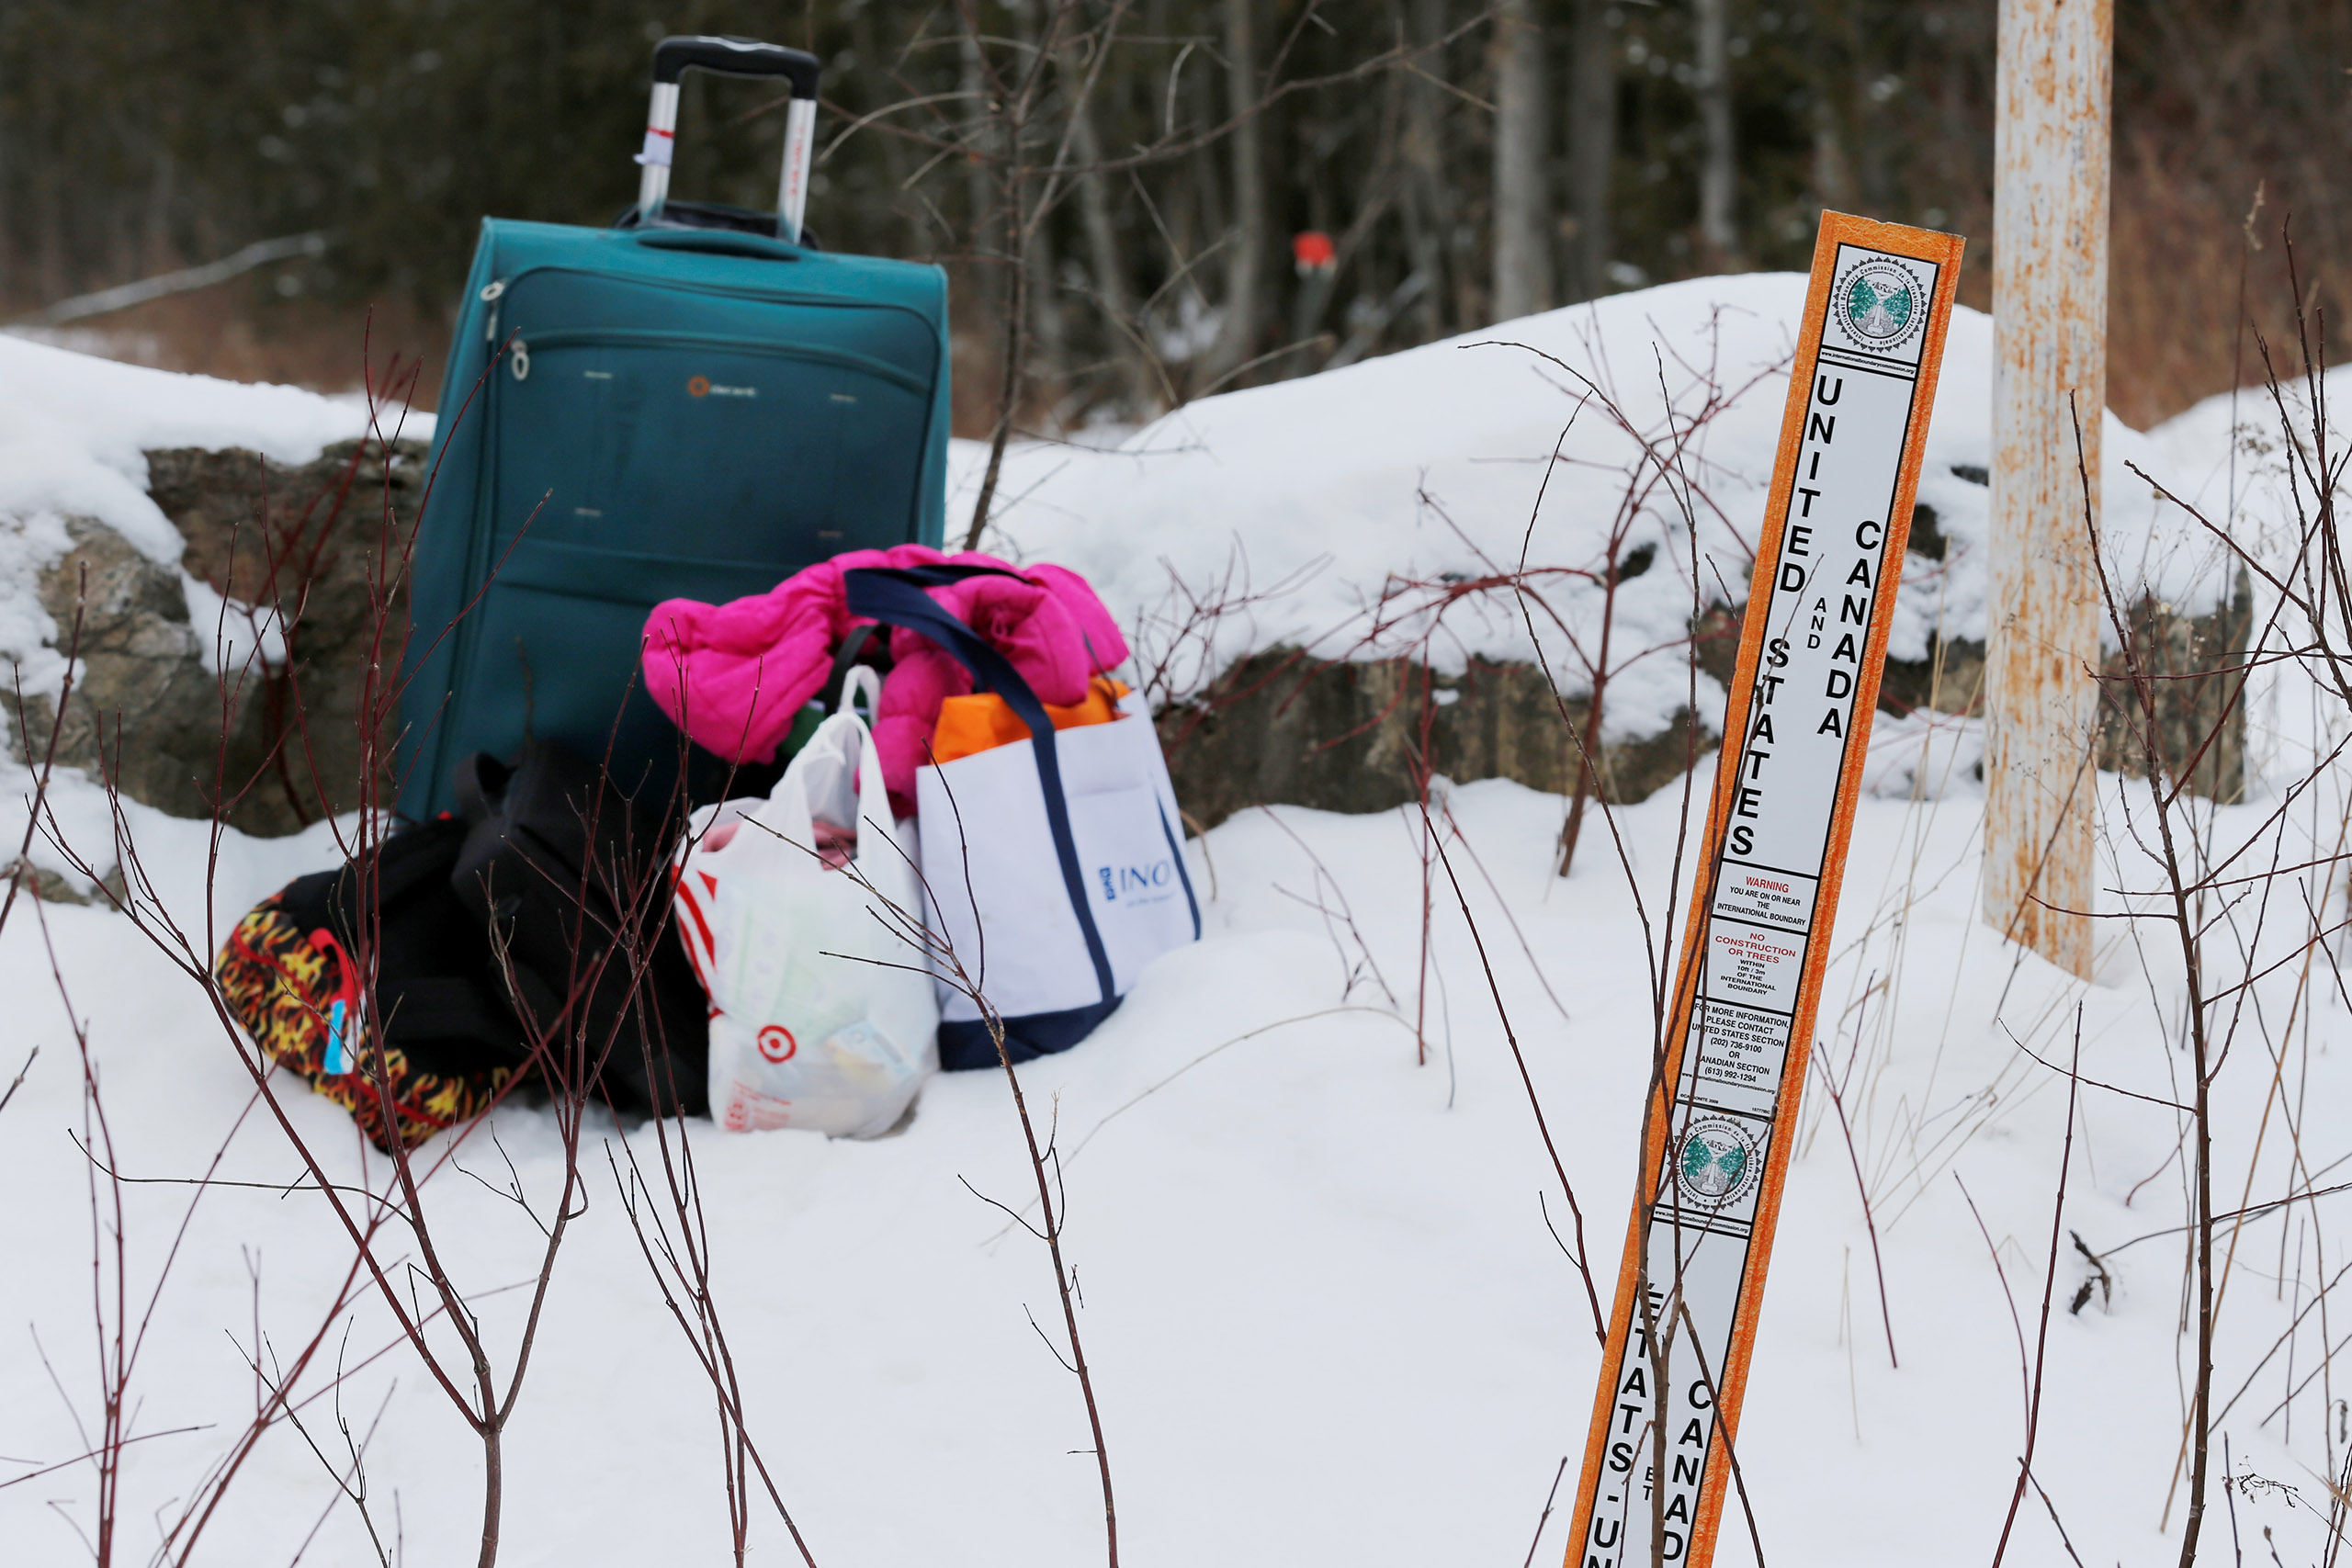 Luggage sits on the United States side of the border after a woman who told police that she and her family were from Sudan is taken into custody by Royal Canadian Mounted Police (RCMP) officers after arriving by taxi and walking across the U.S.-Canada border into Hemmingford, Quebec, on Feb. 12, 2017.